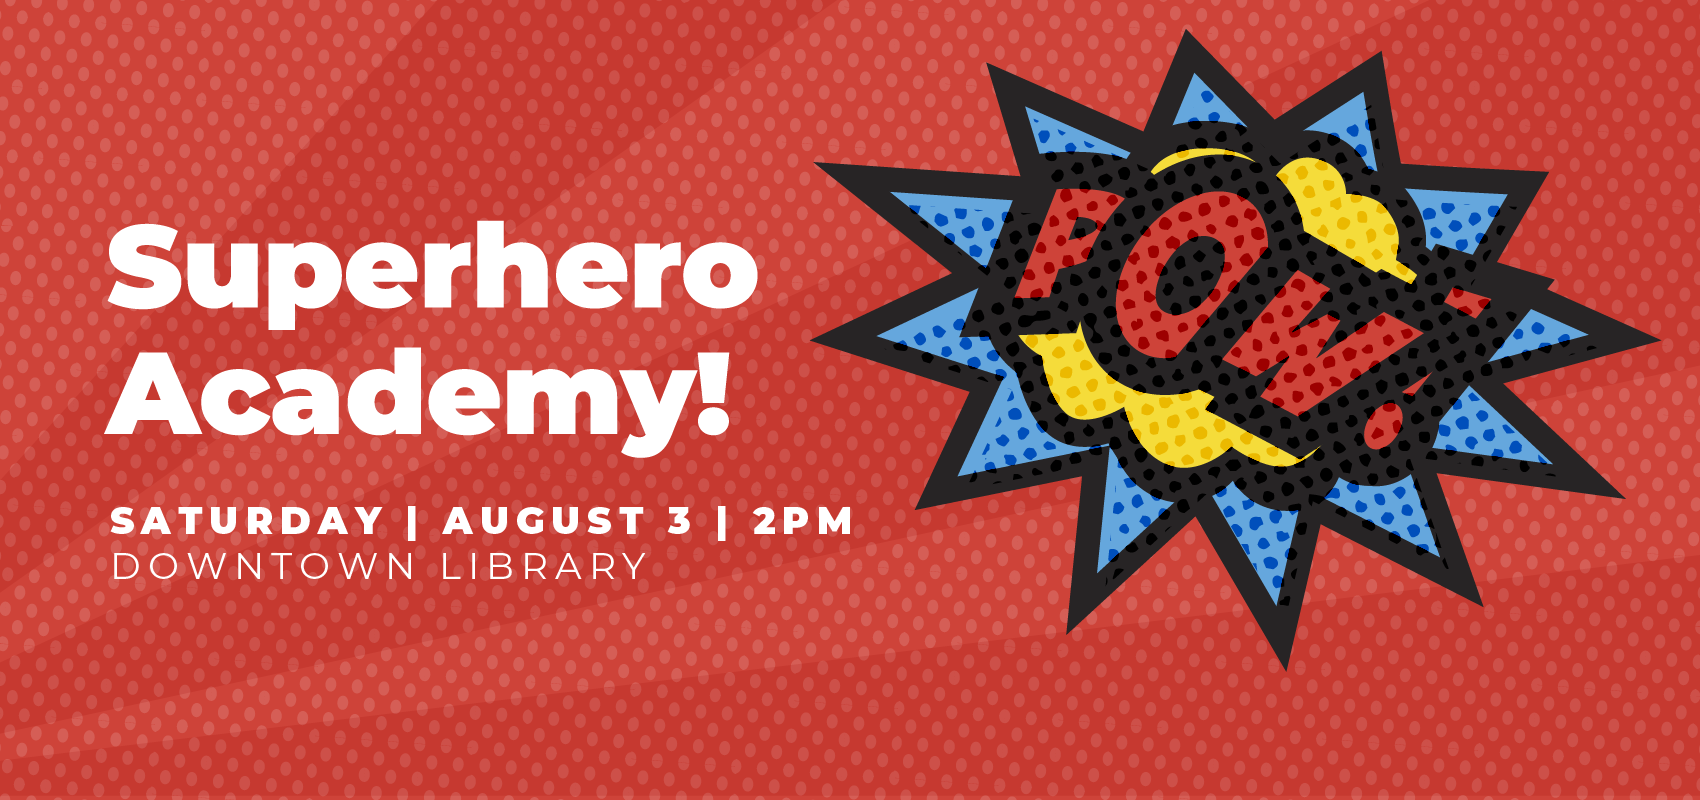 Superhero Academy! - Saturday August 3,. .